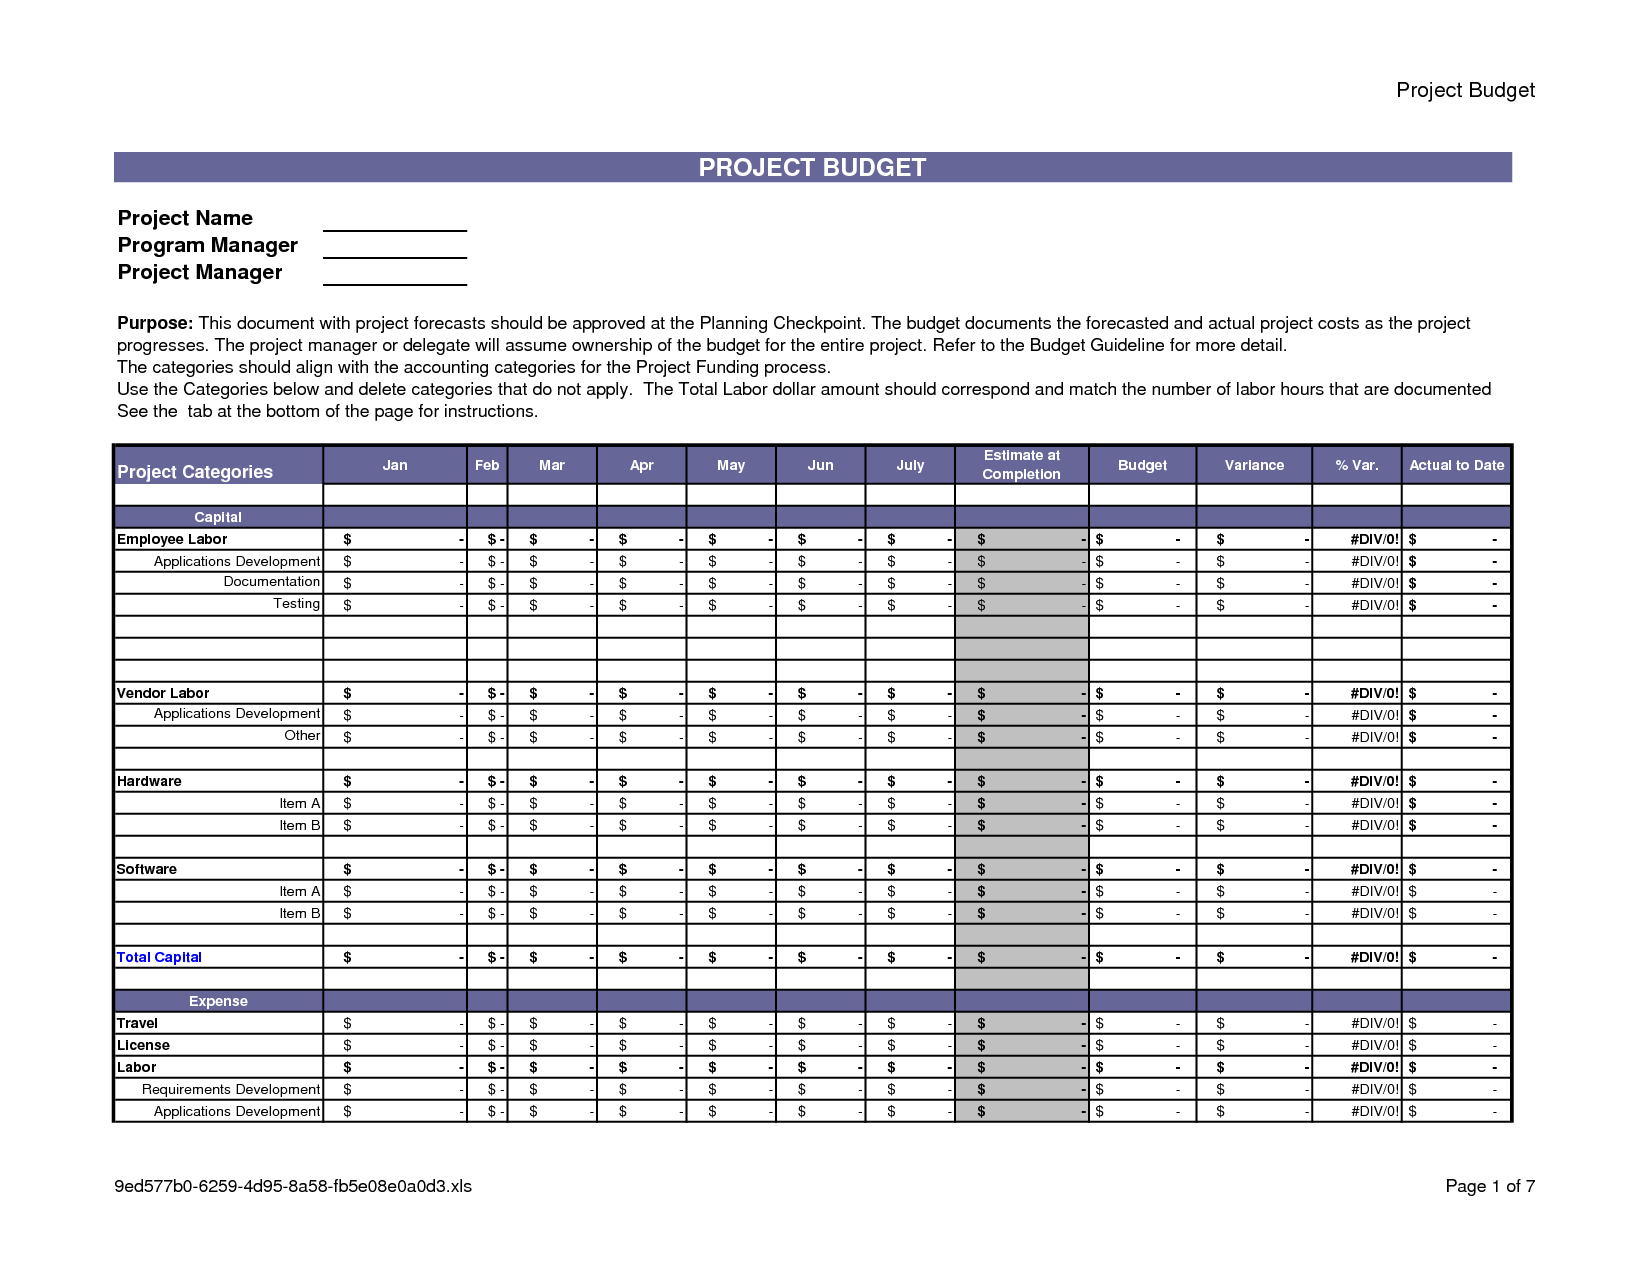 Project Management Spreadsheet Template Free and Project Bud Template Cyberuse